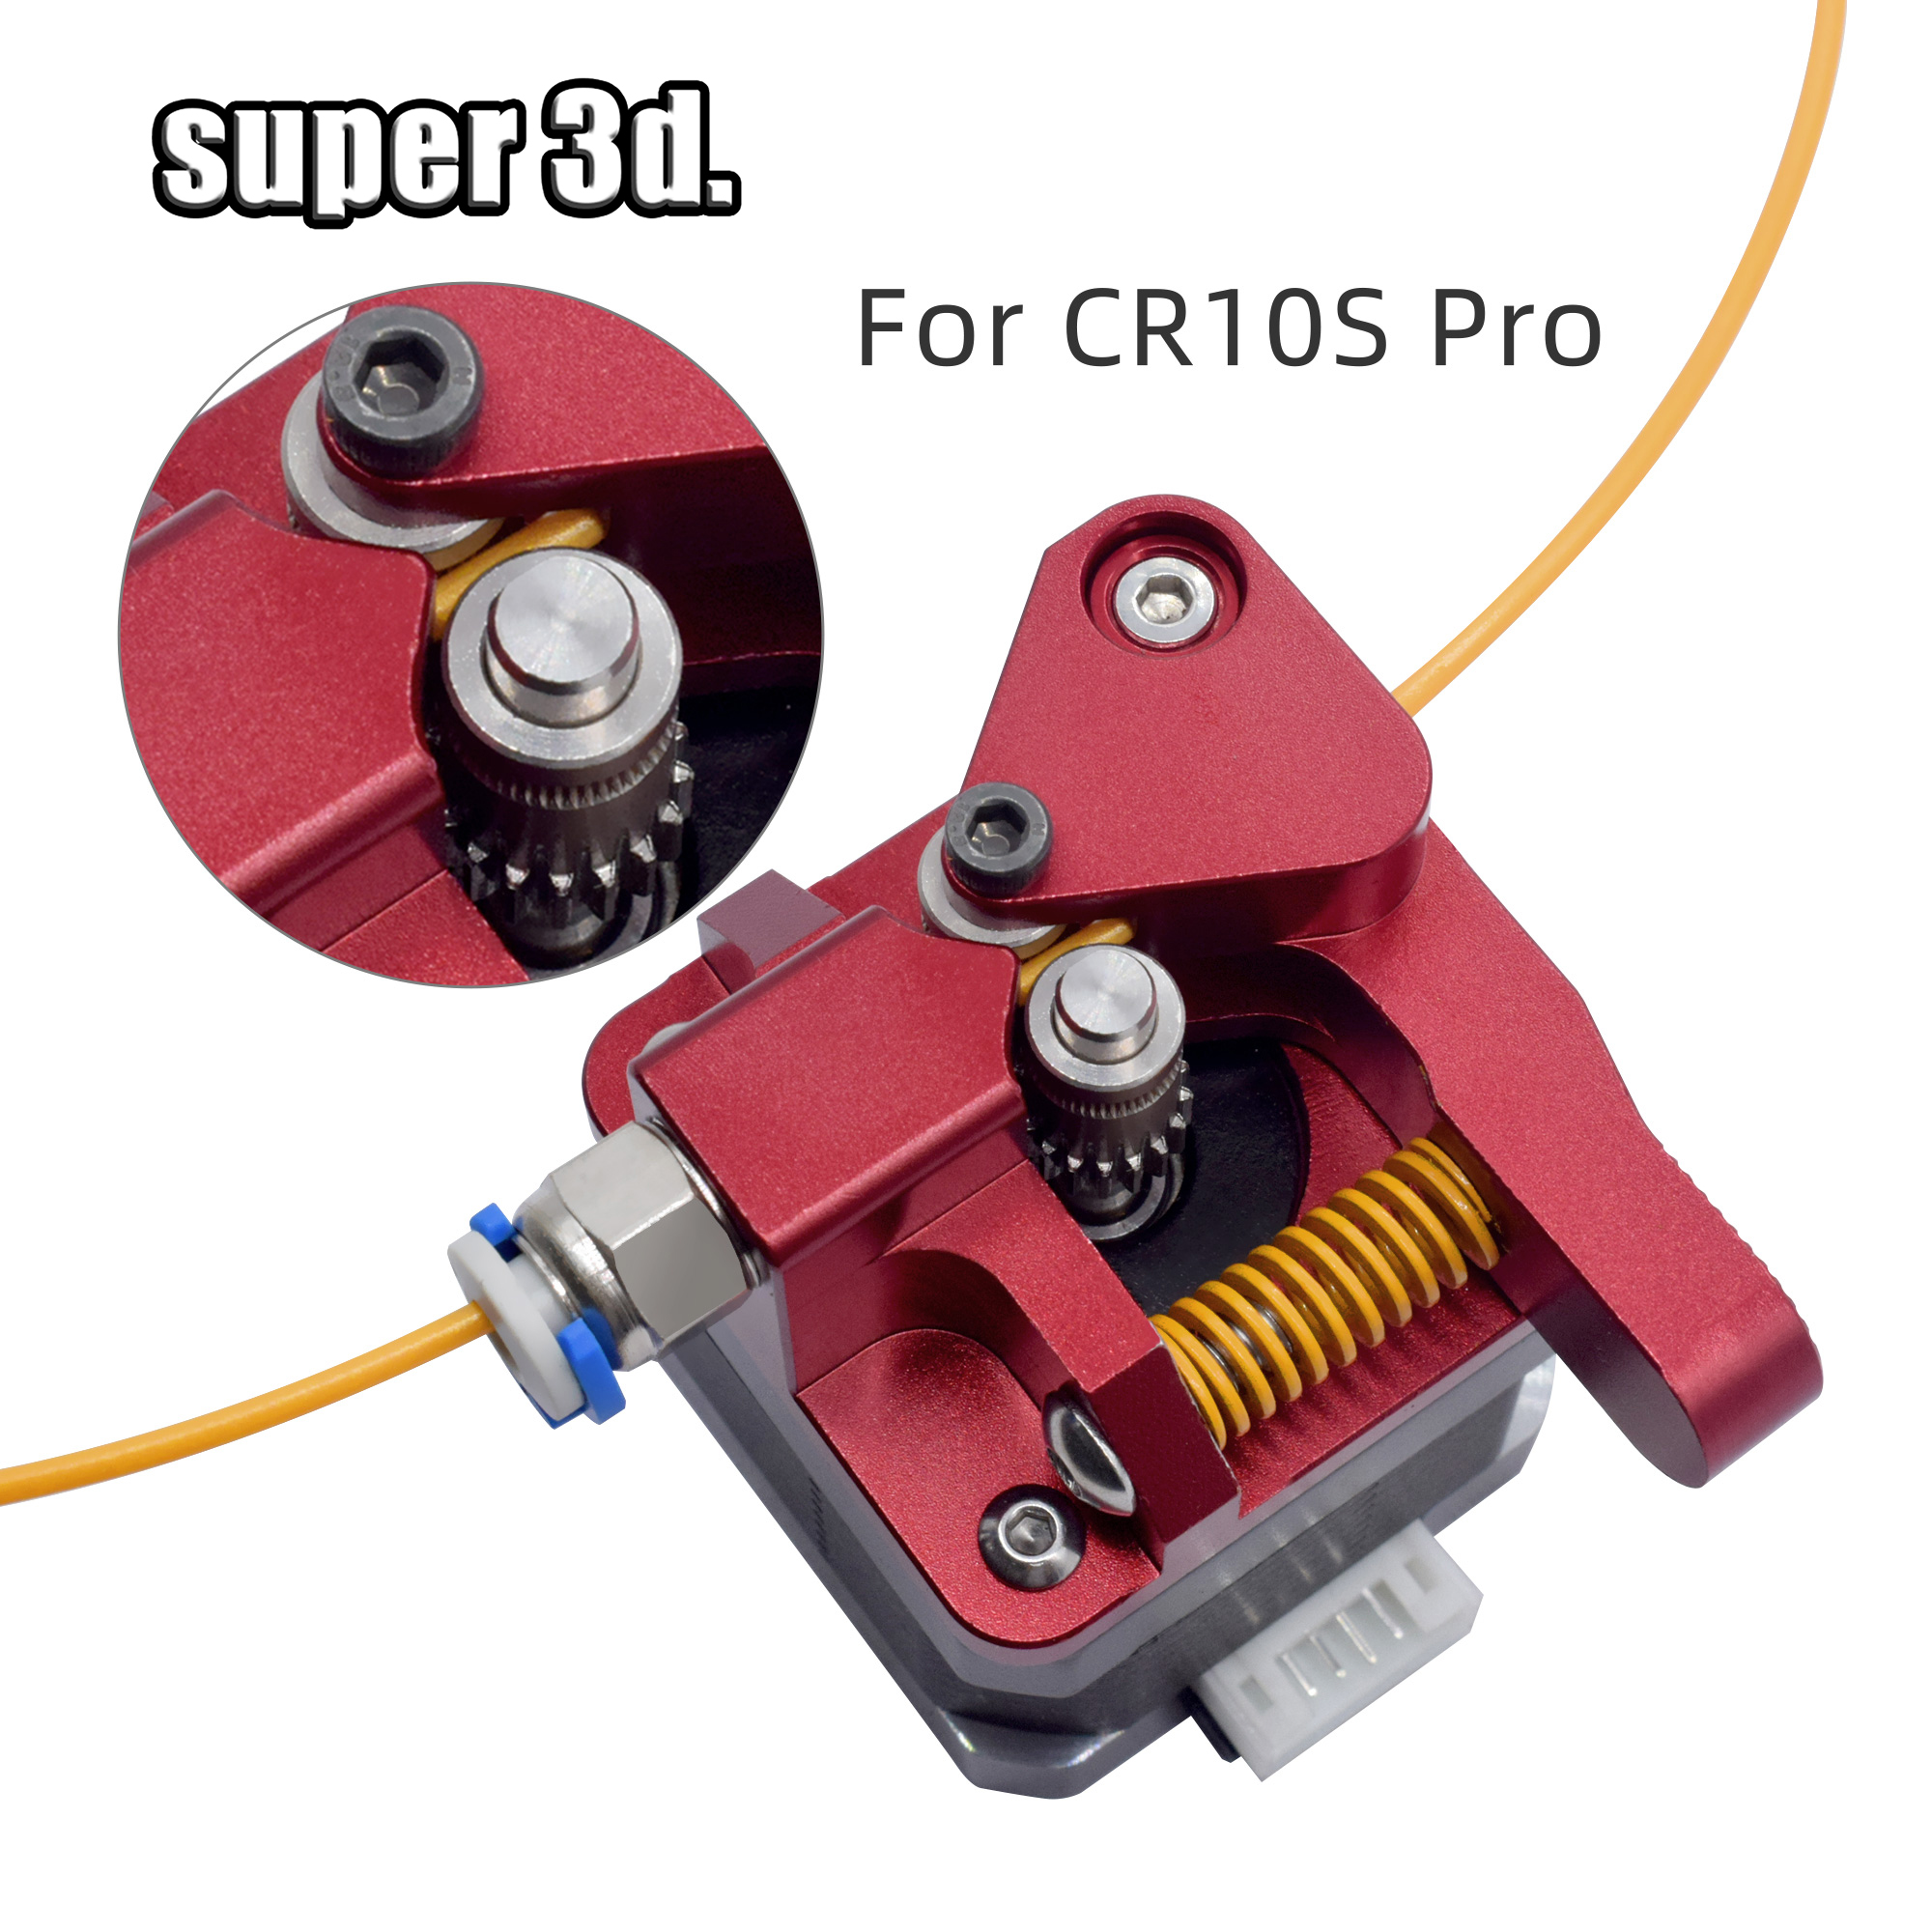 Cr10 Aluminum Upgrade Dual Gear Mk8 Extruder Kit For CR10S PRO RepRap Prusa I3 1.75mm 3d Parts Drive Feed Double Pulley Extruder(China)